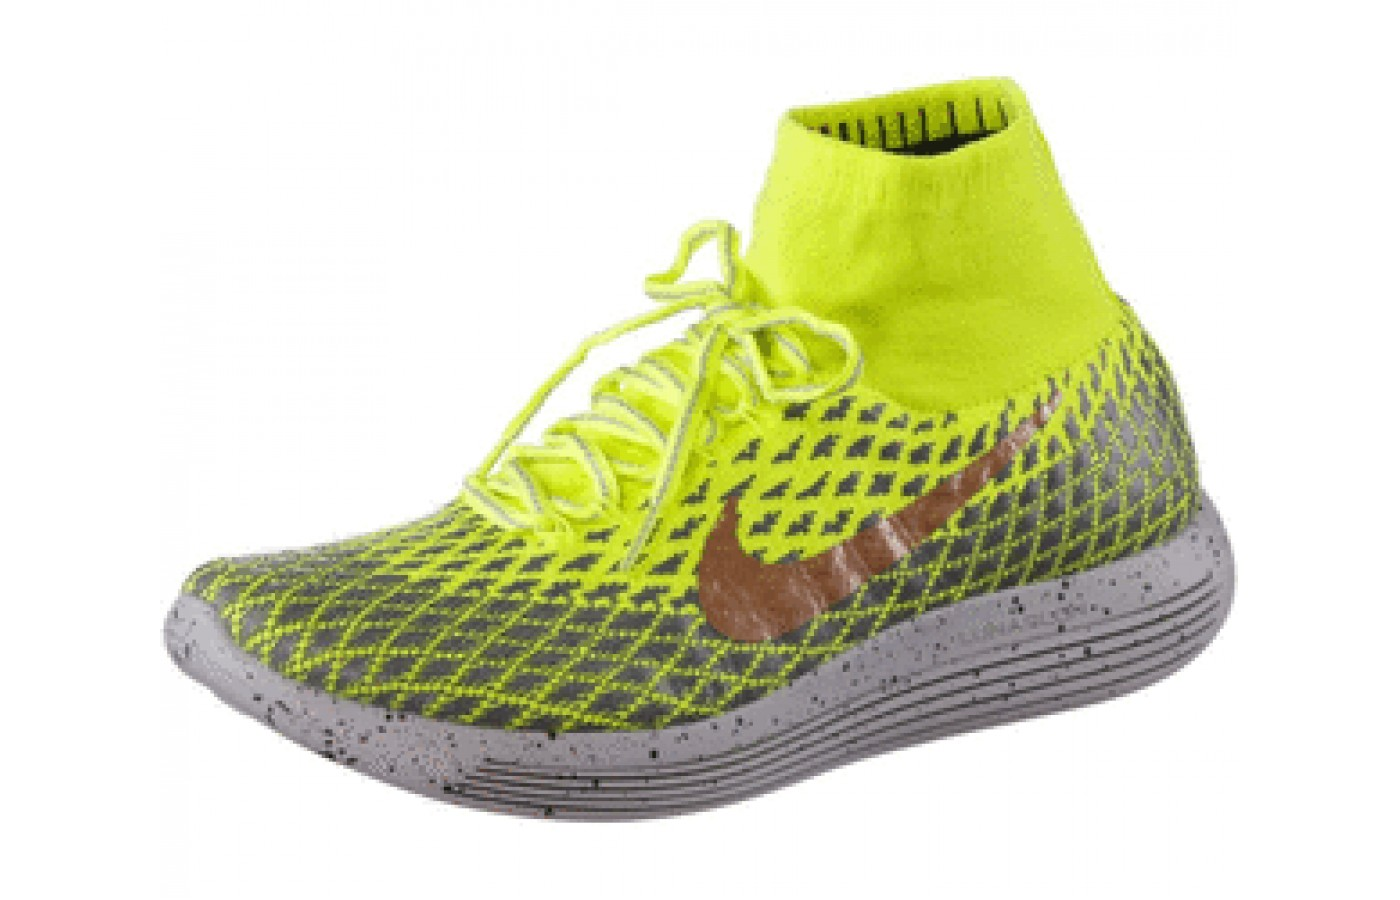 e396b0db2936 Side Angled view of the Nike LunarEpic FlyKnit Shield ...